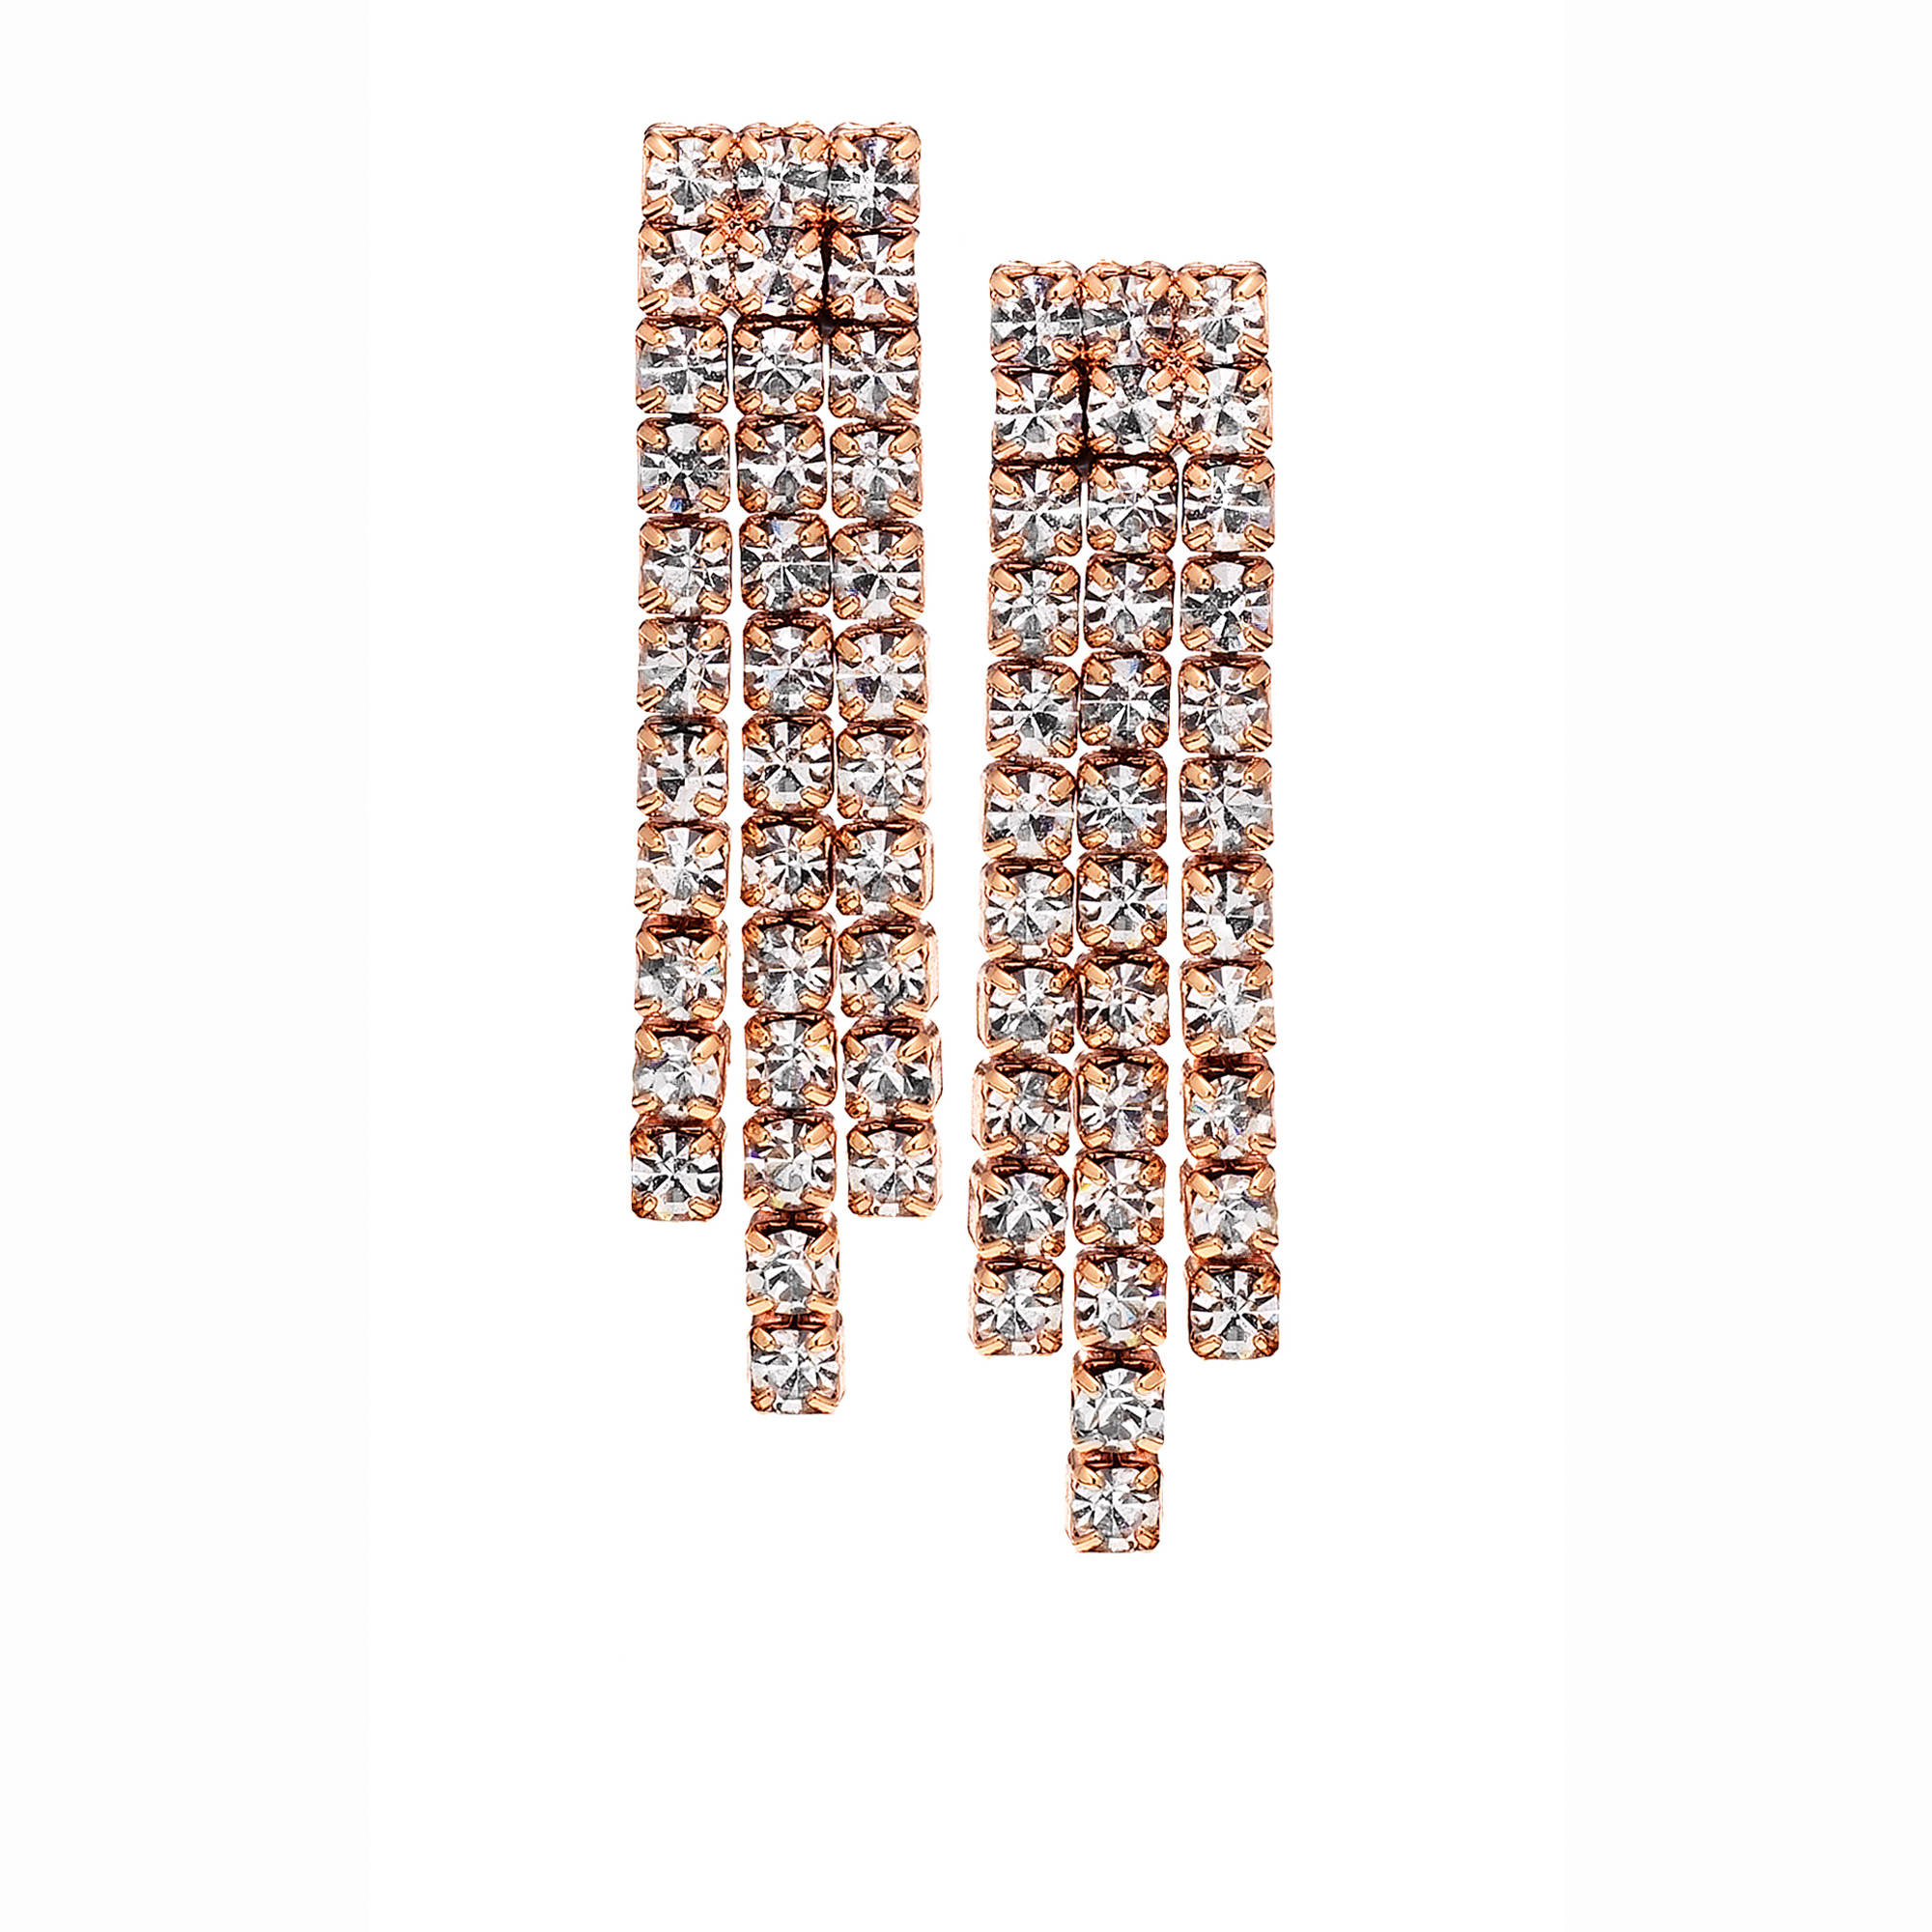 X & O Handset Austrian Crystal 14kt Rose Gold-Plated Three-Row Earrings